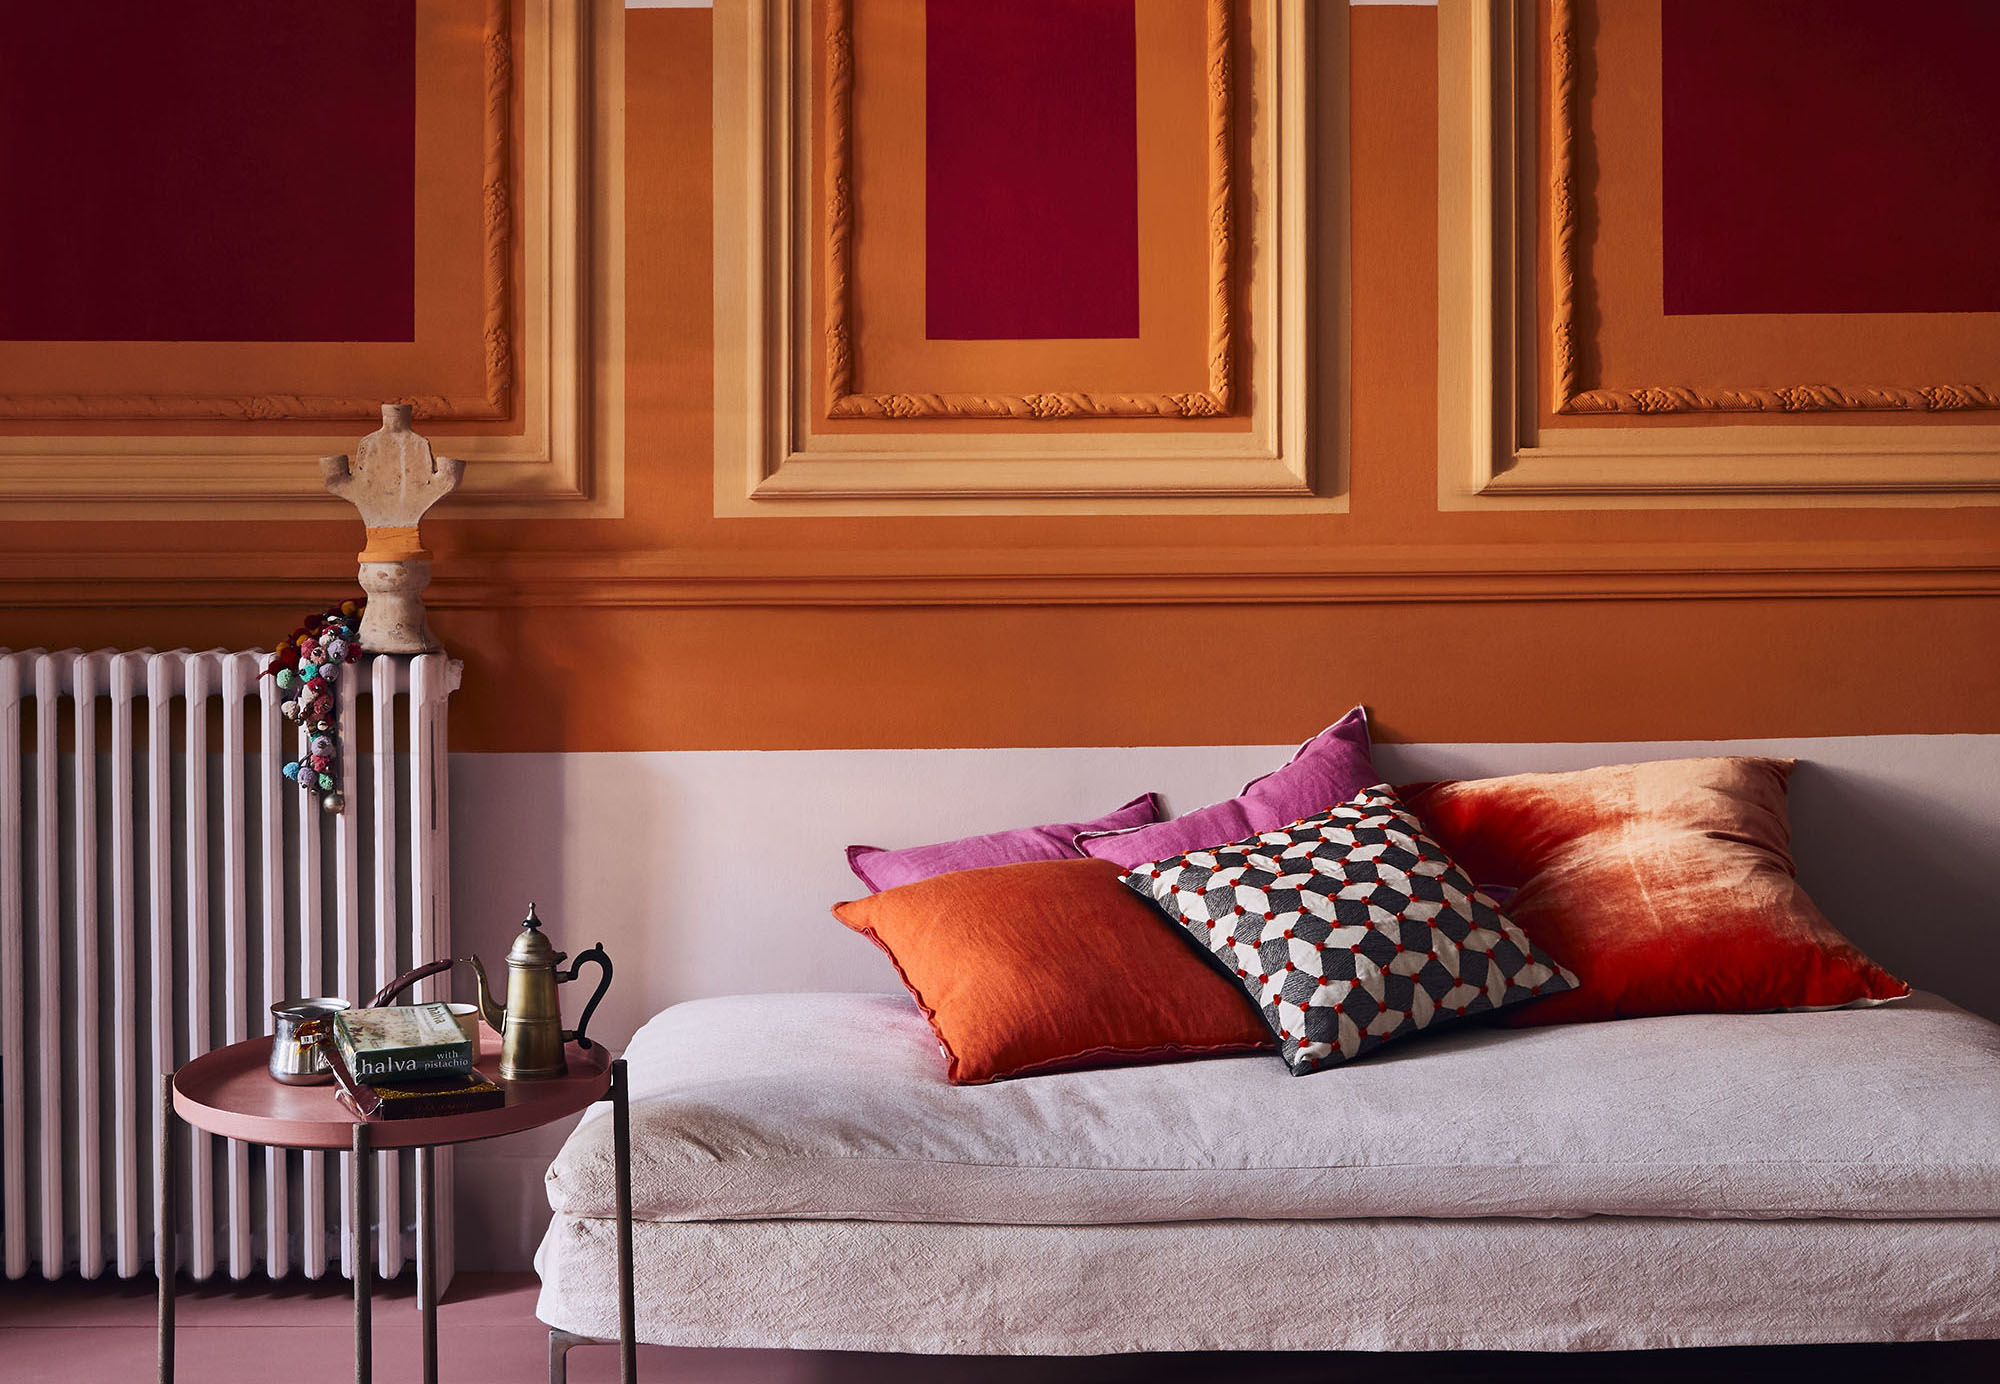 These painted panels add an antique touch to a vibrant living room scheme. Image: Annie Sloan